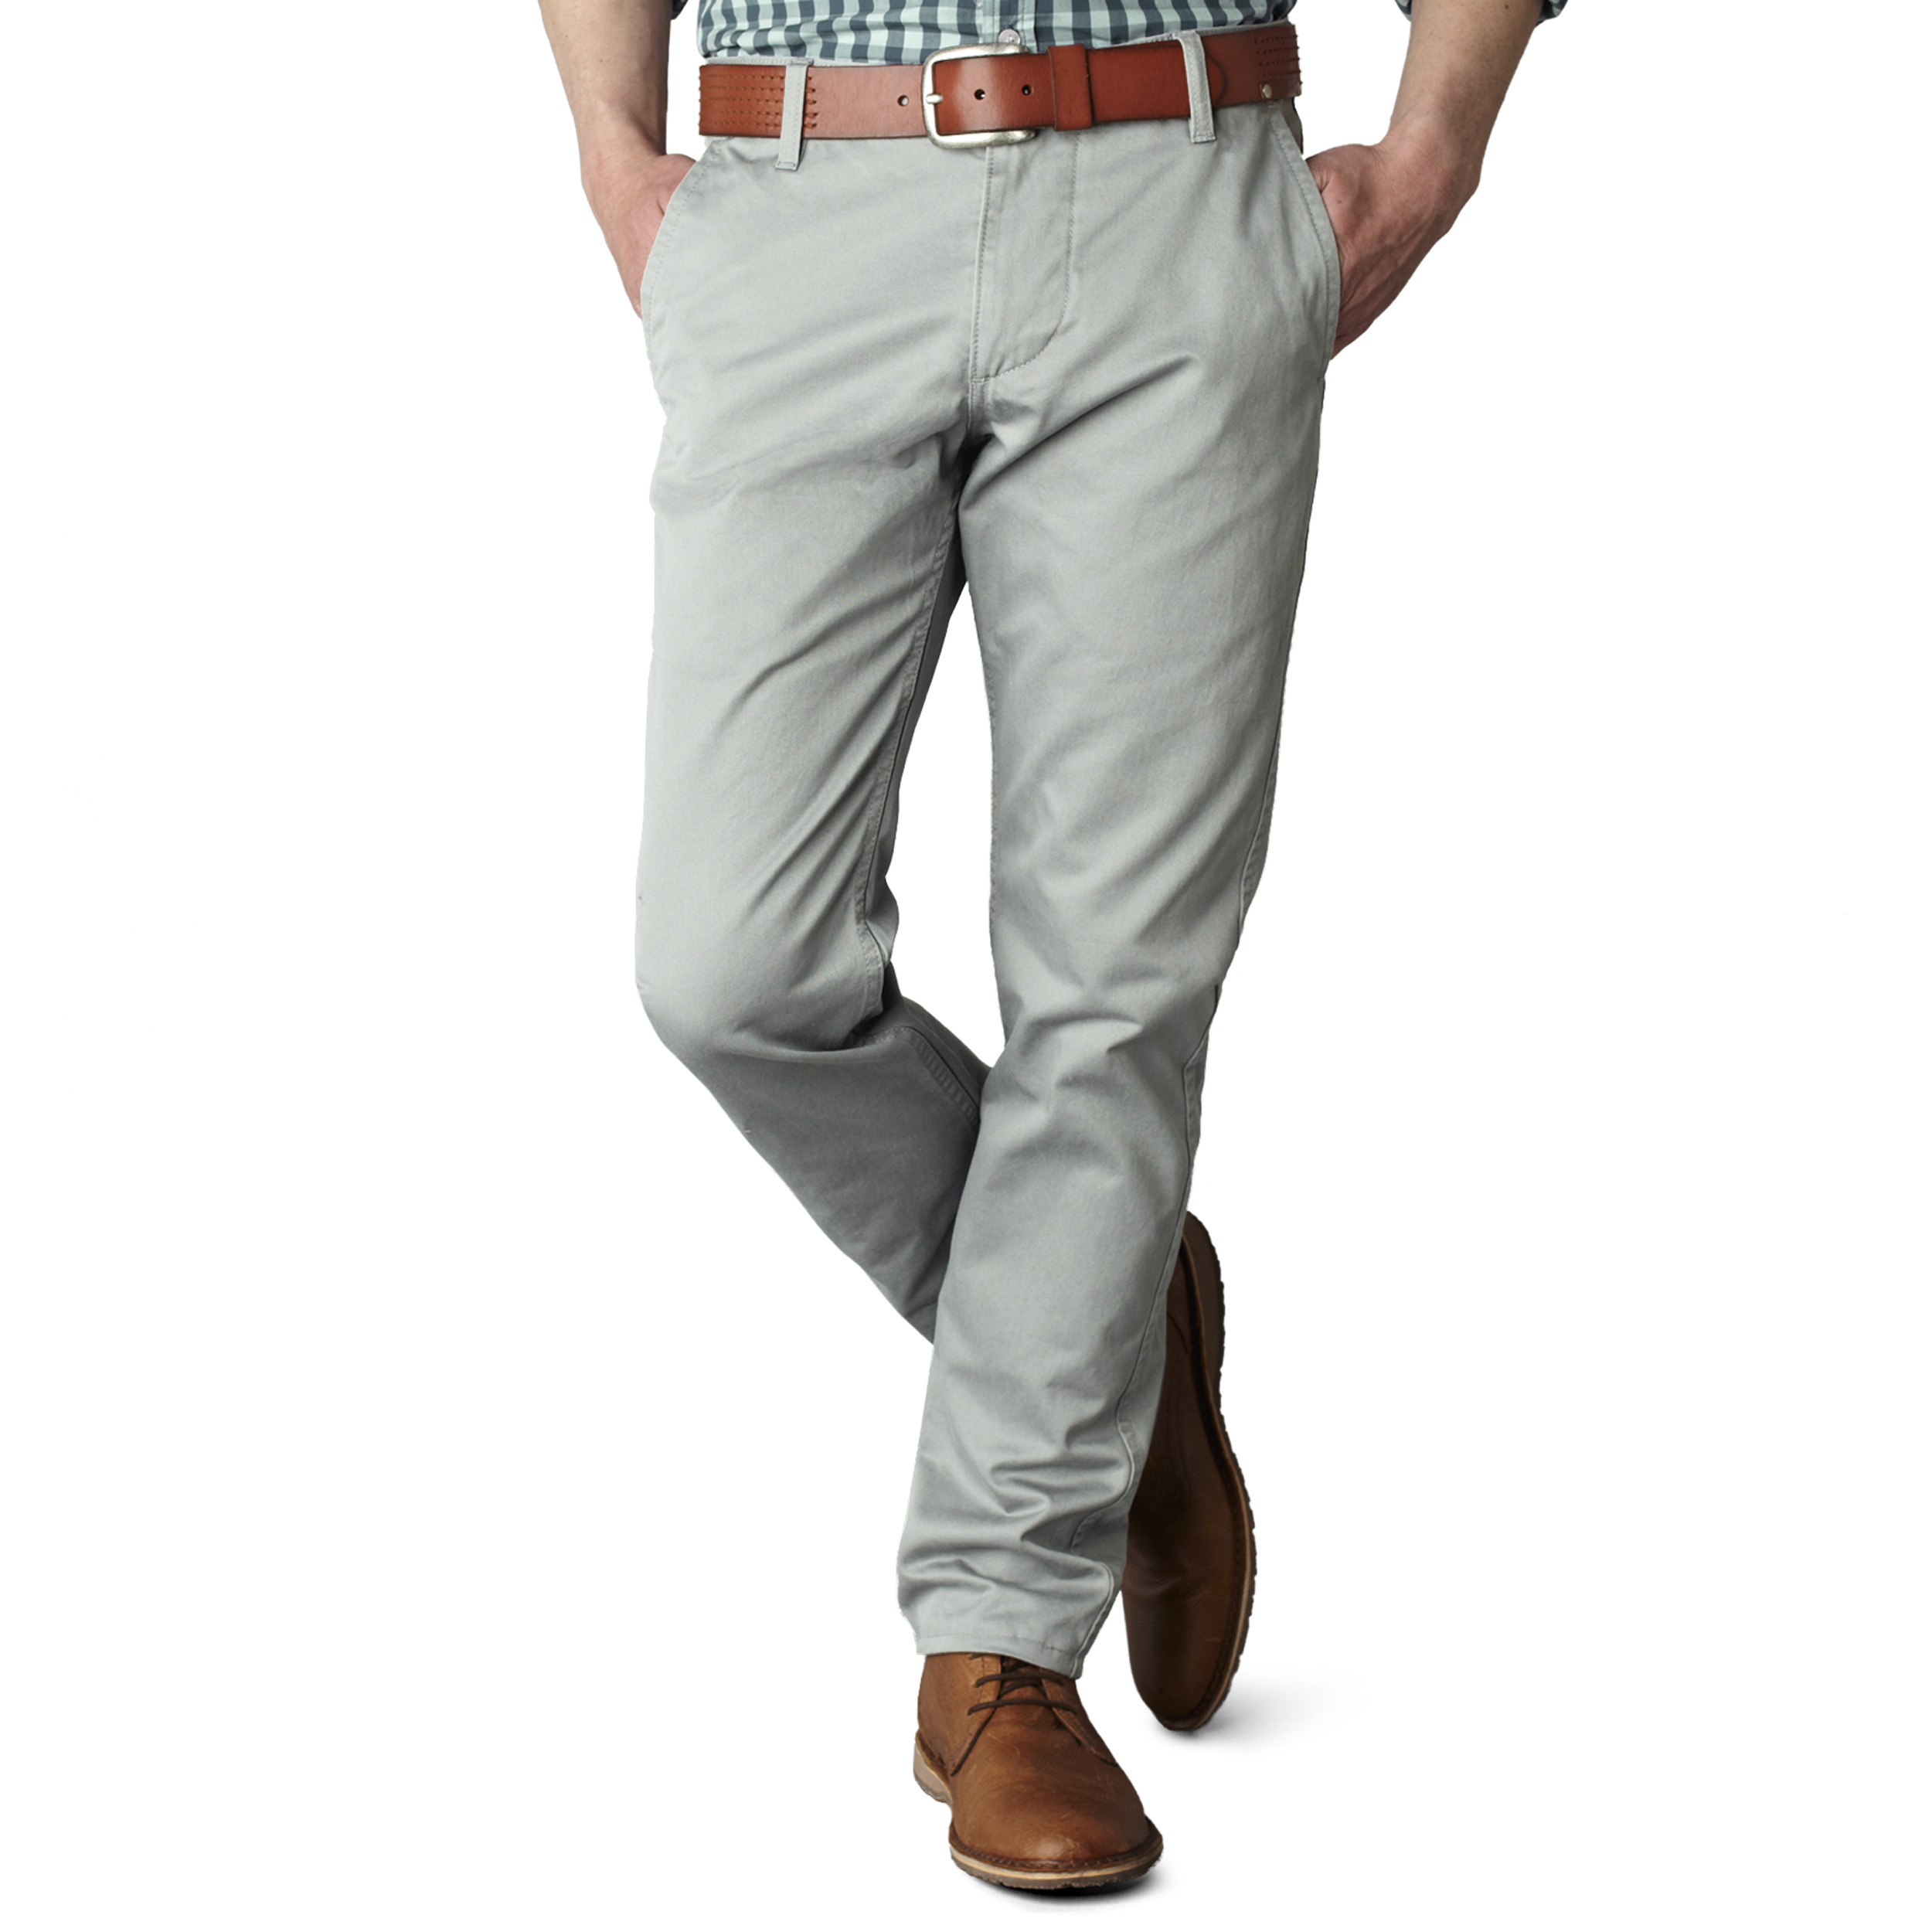 Pantalon alpha khaki original slim tapered  en twill gris clair